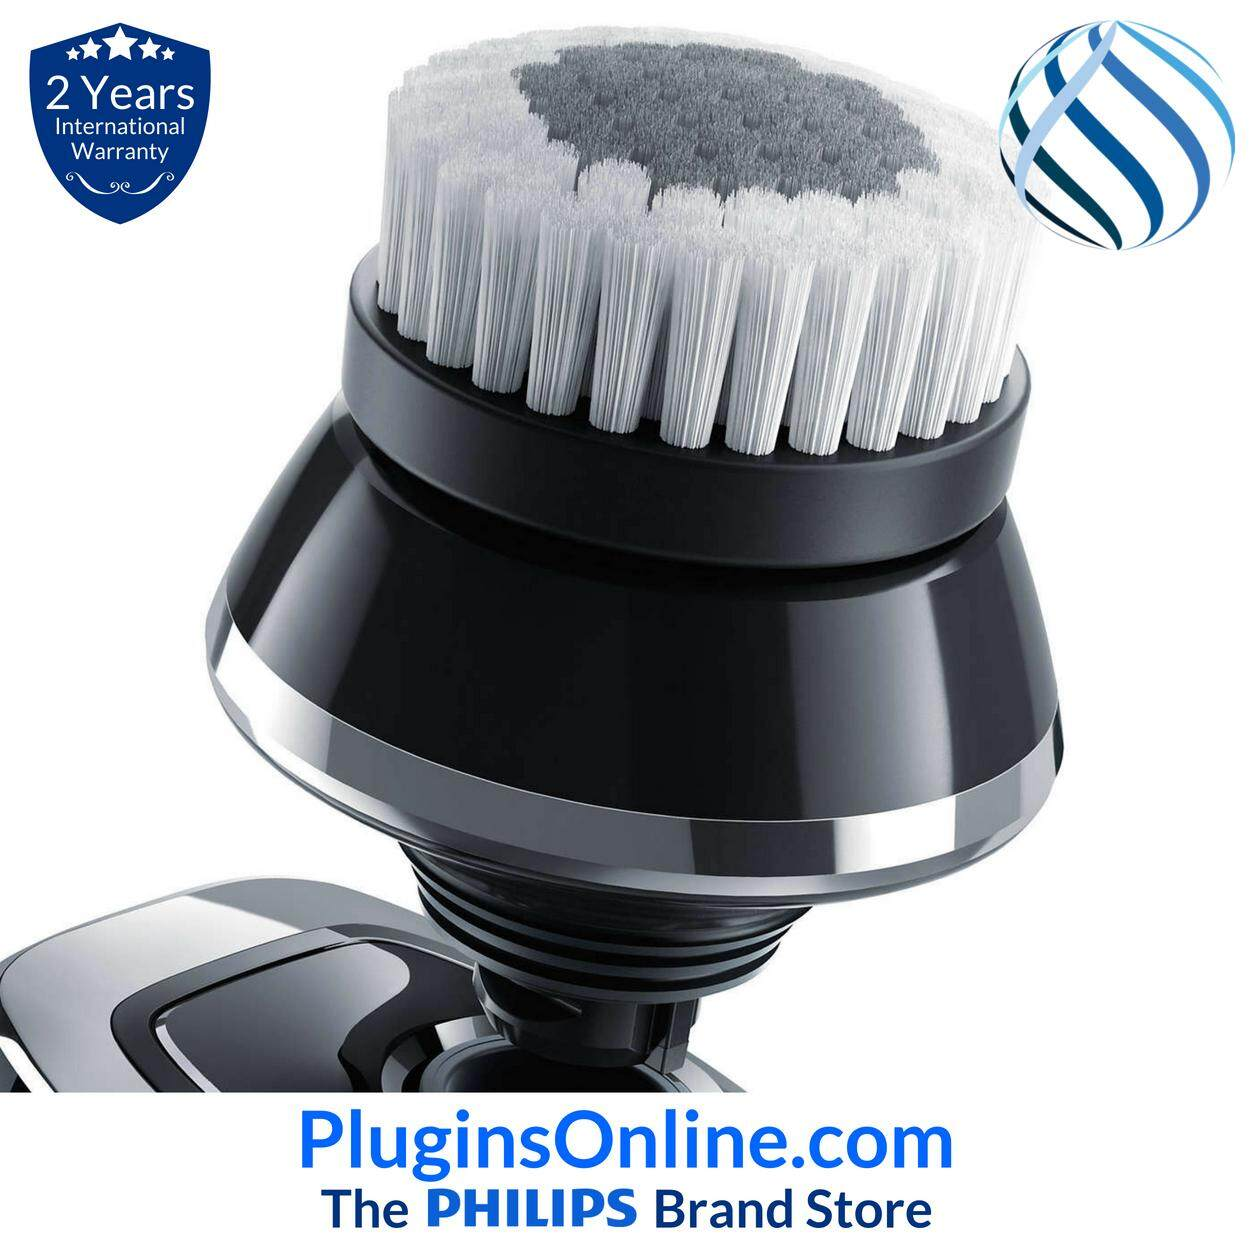 Philips RQ560/51 Oil Control Cleaning Brush (RQ560)